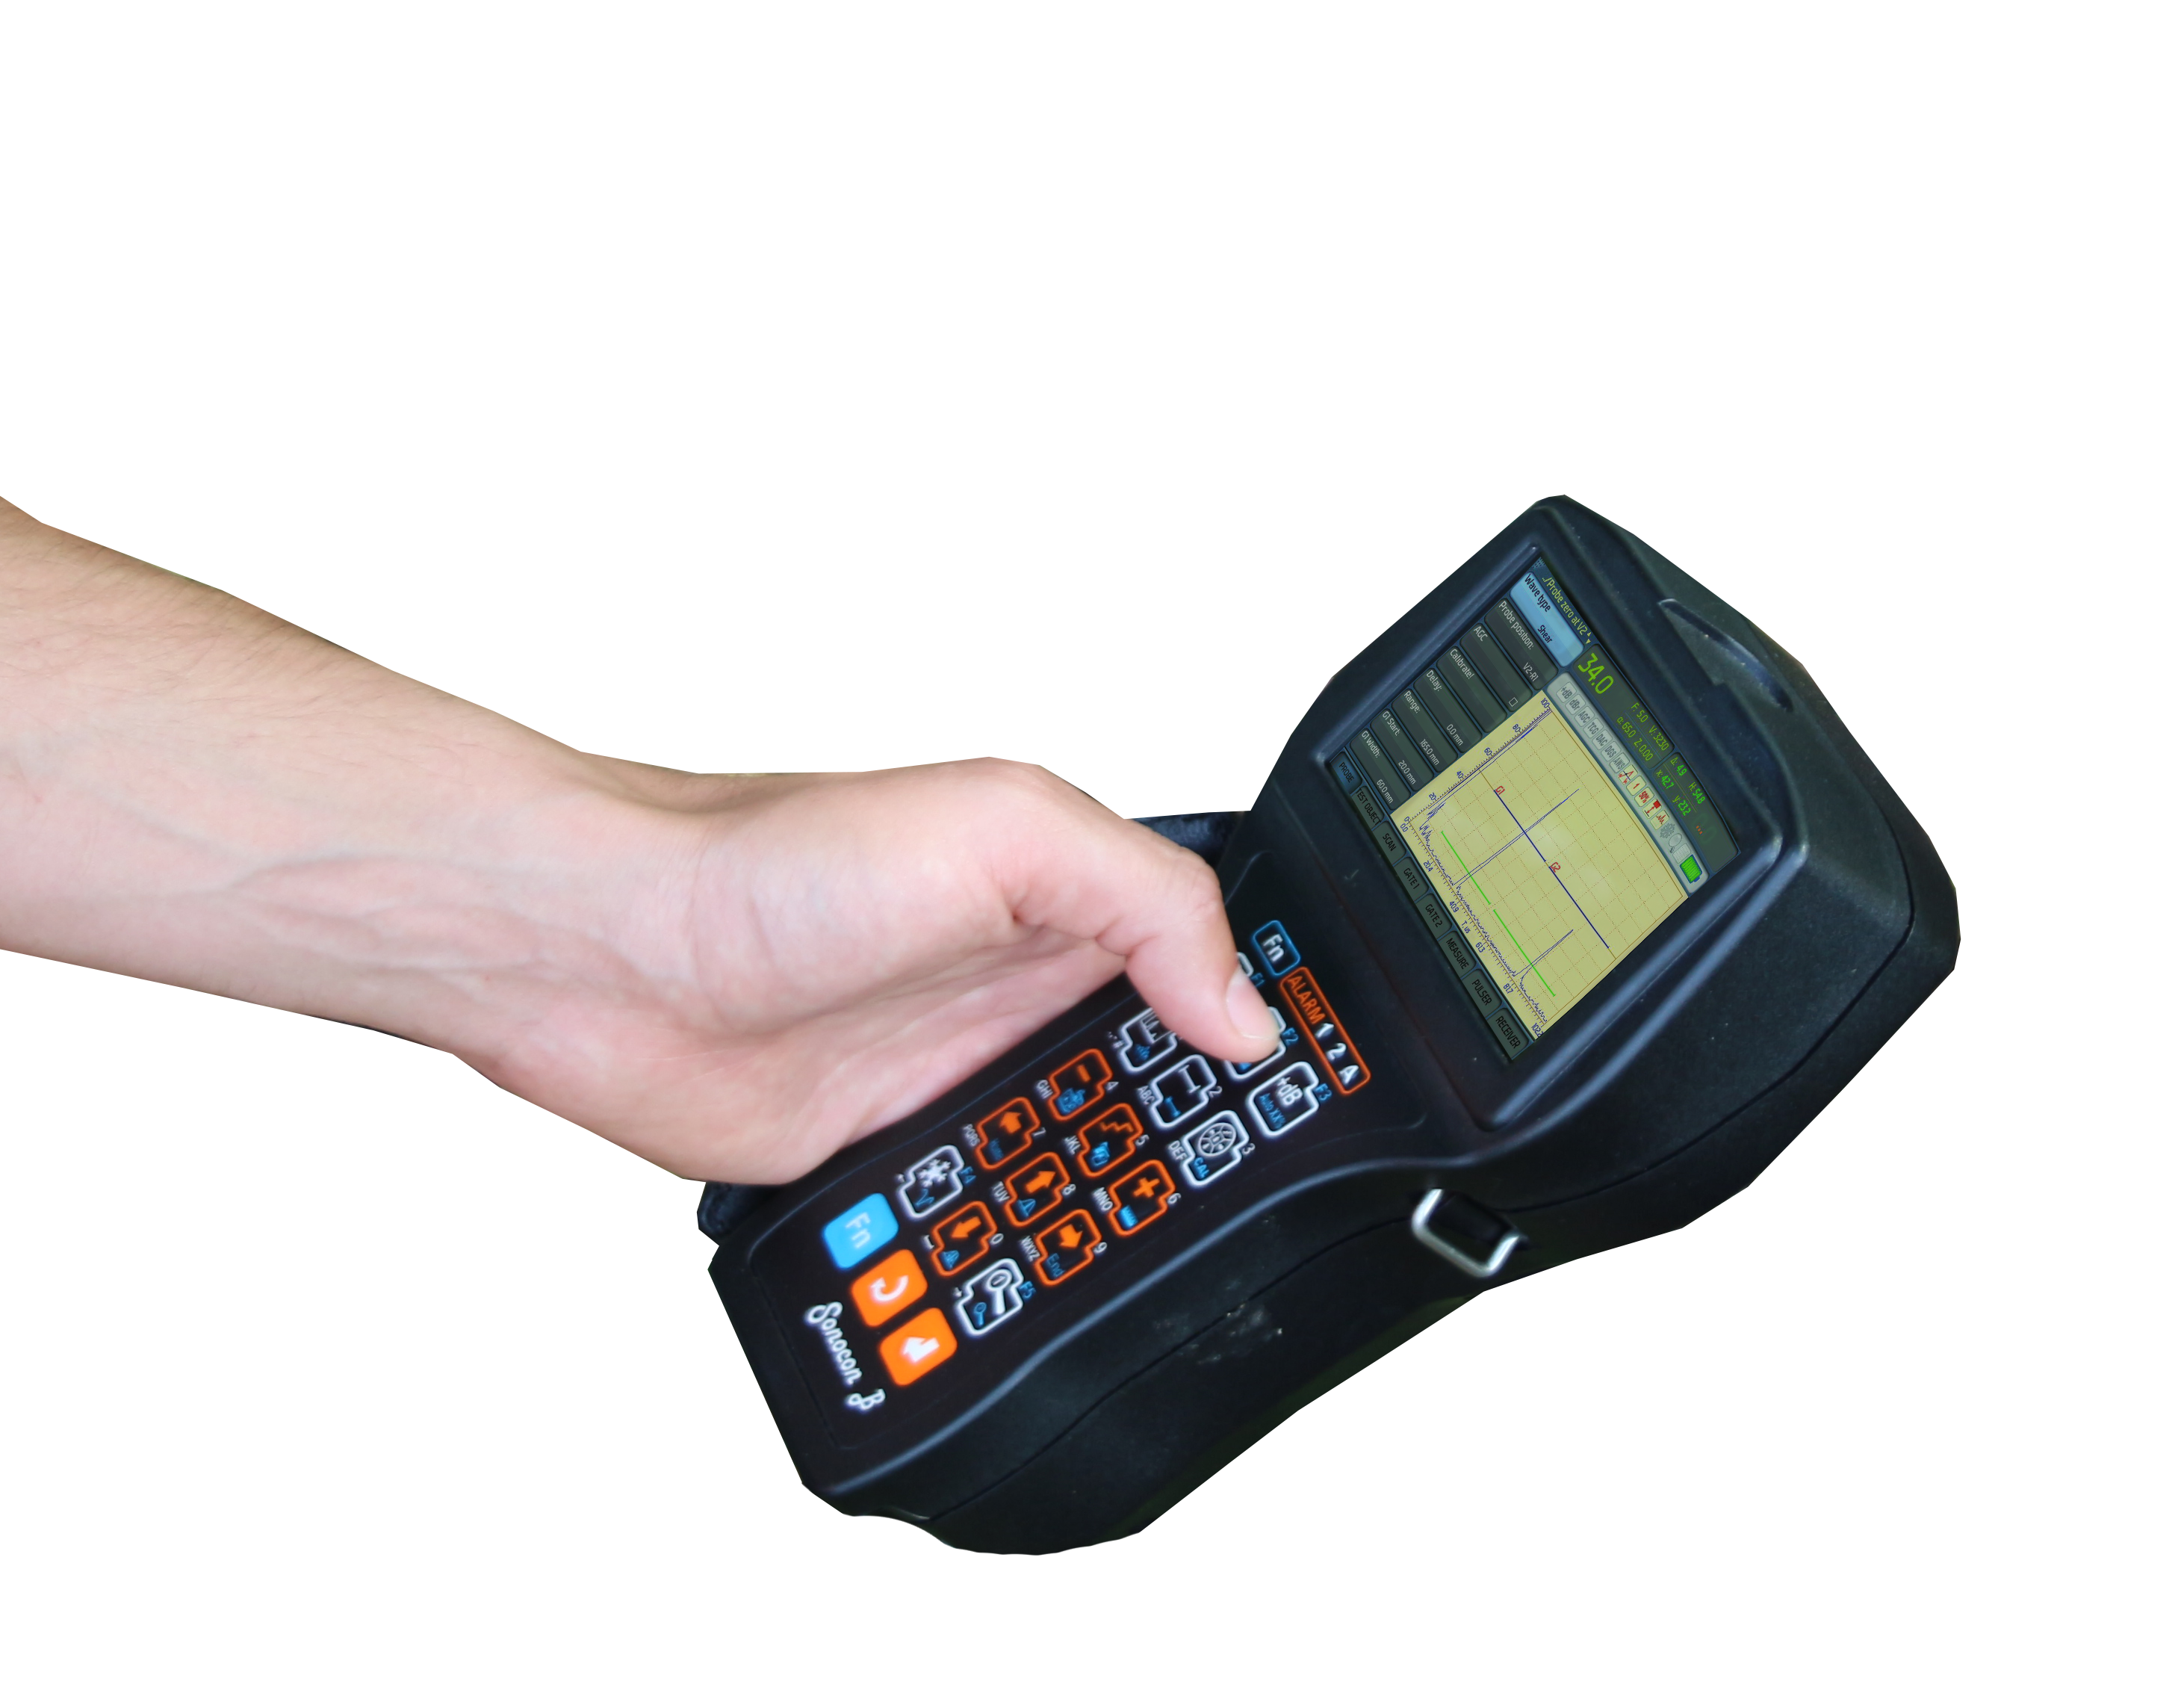 Portable UT flaw detector Sonocon B held in the hand